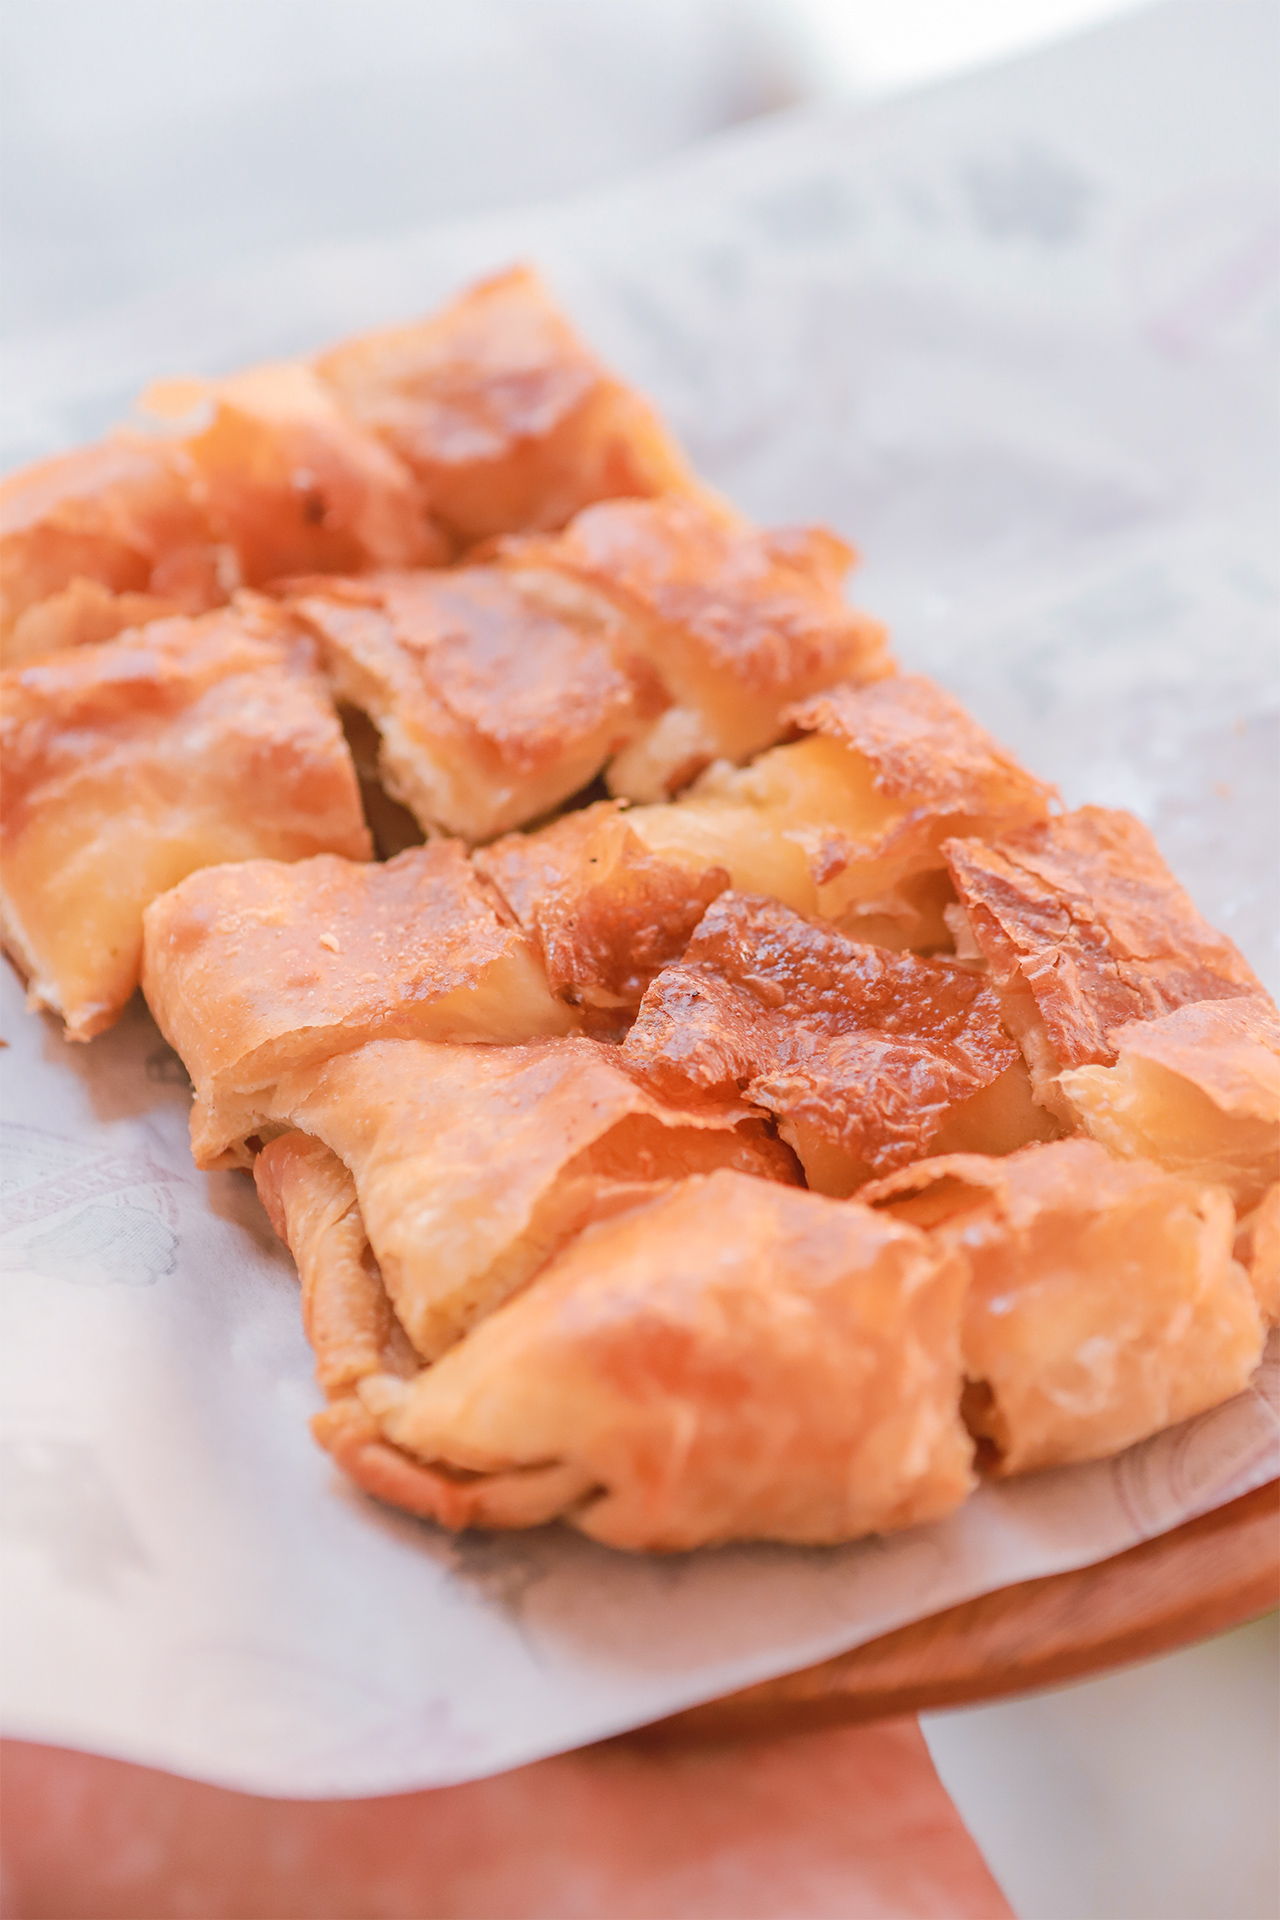 Treat yourself to a bougatsa